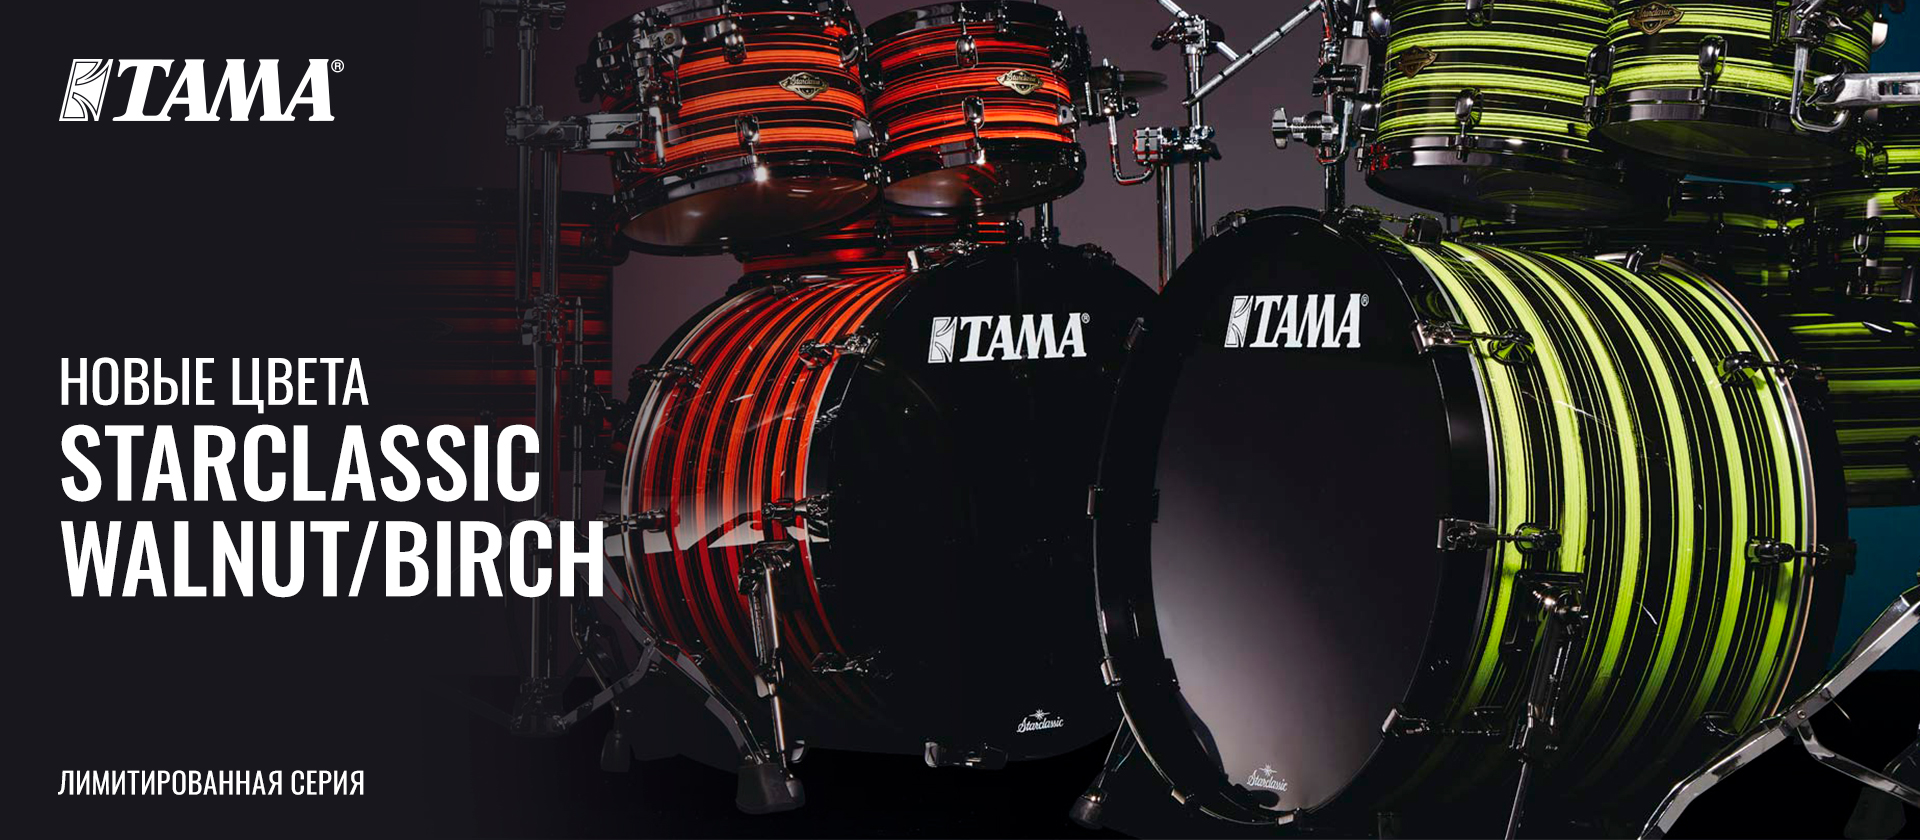 Tama Starclassic Walnut/Birch